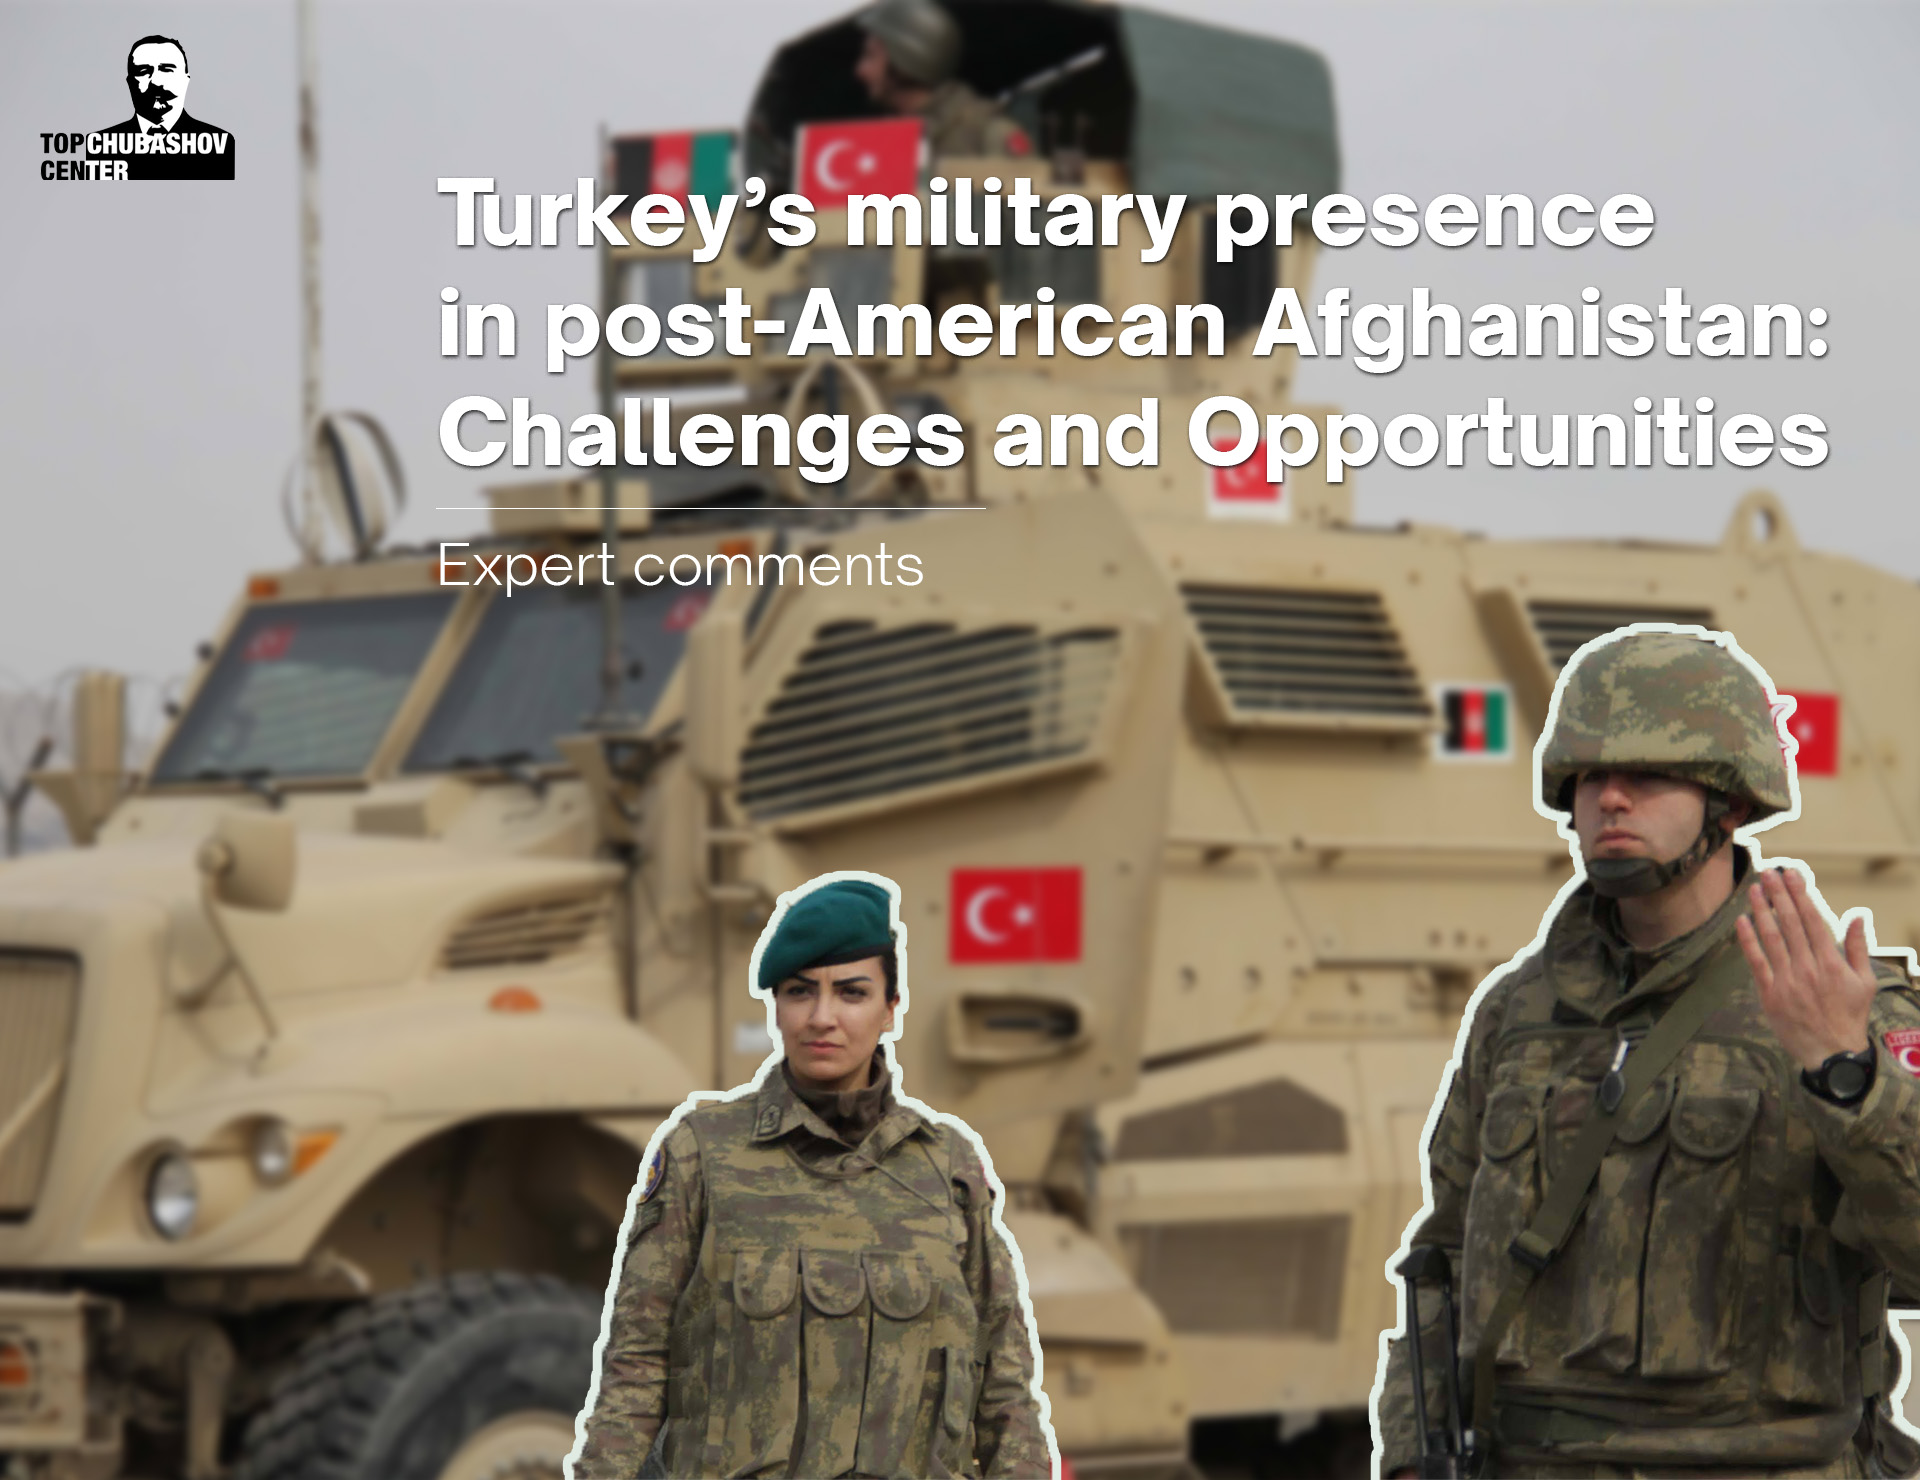 Turkey's military presence in post-American Afghanistan: Challenges and Opportunities